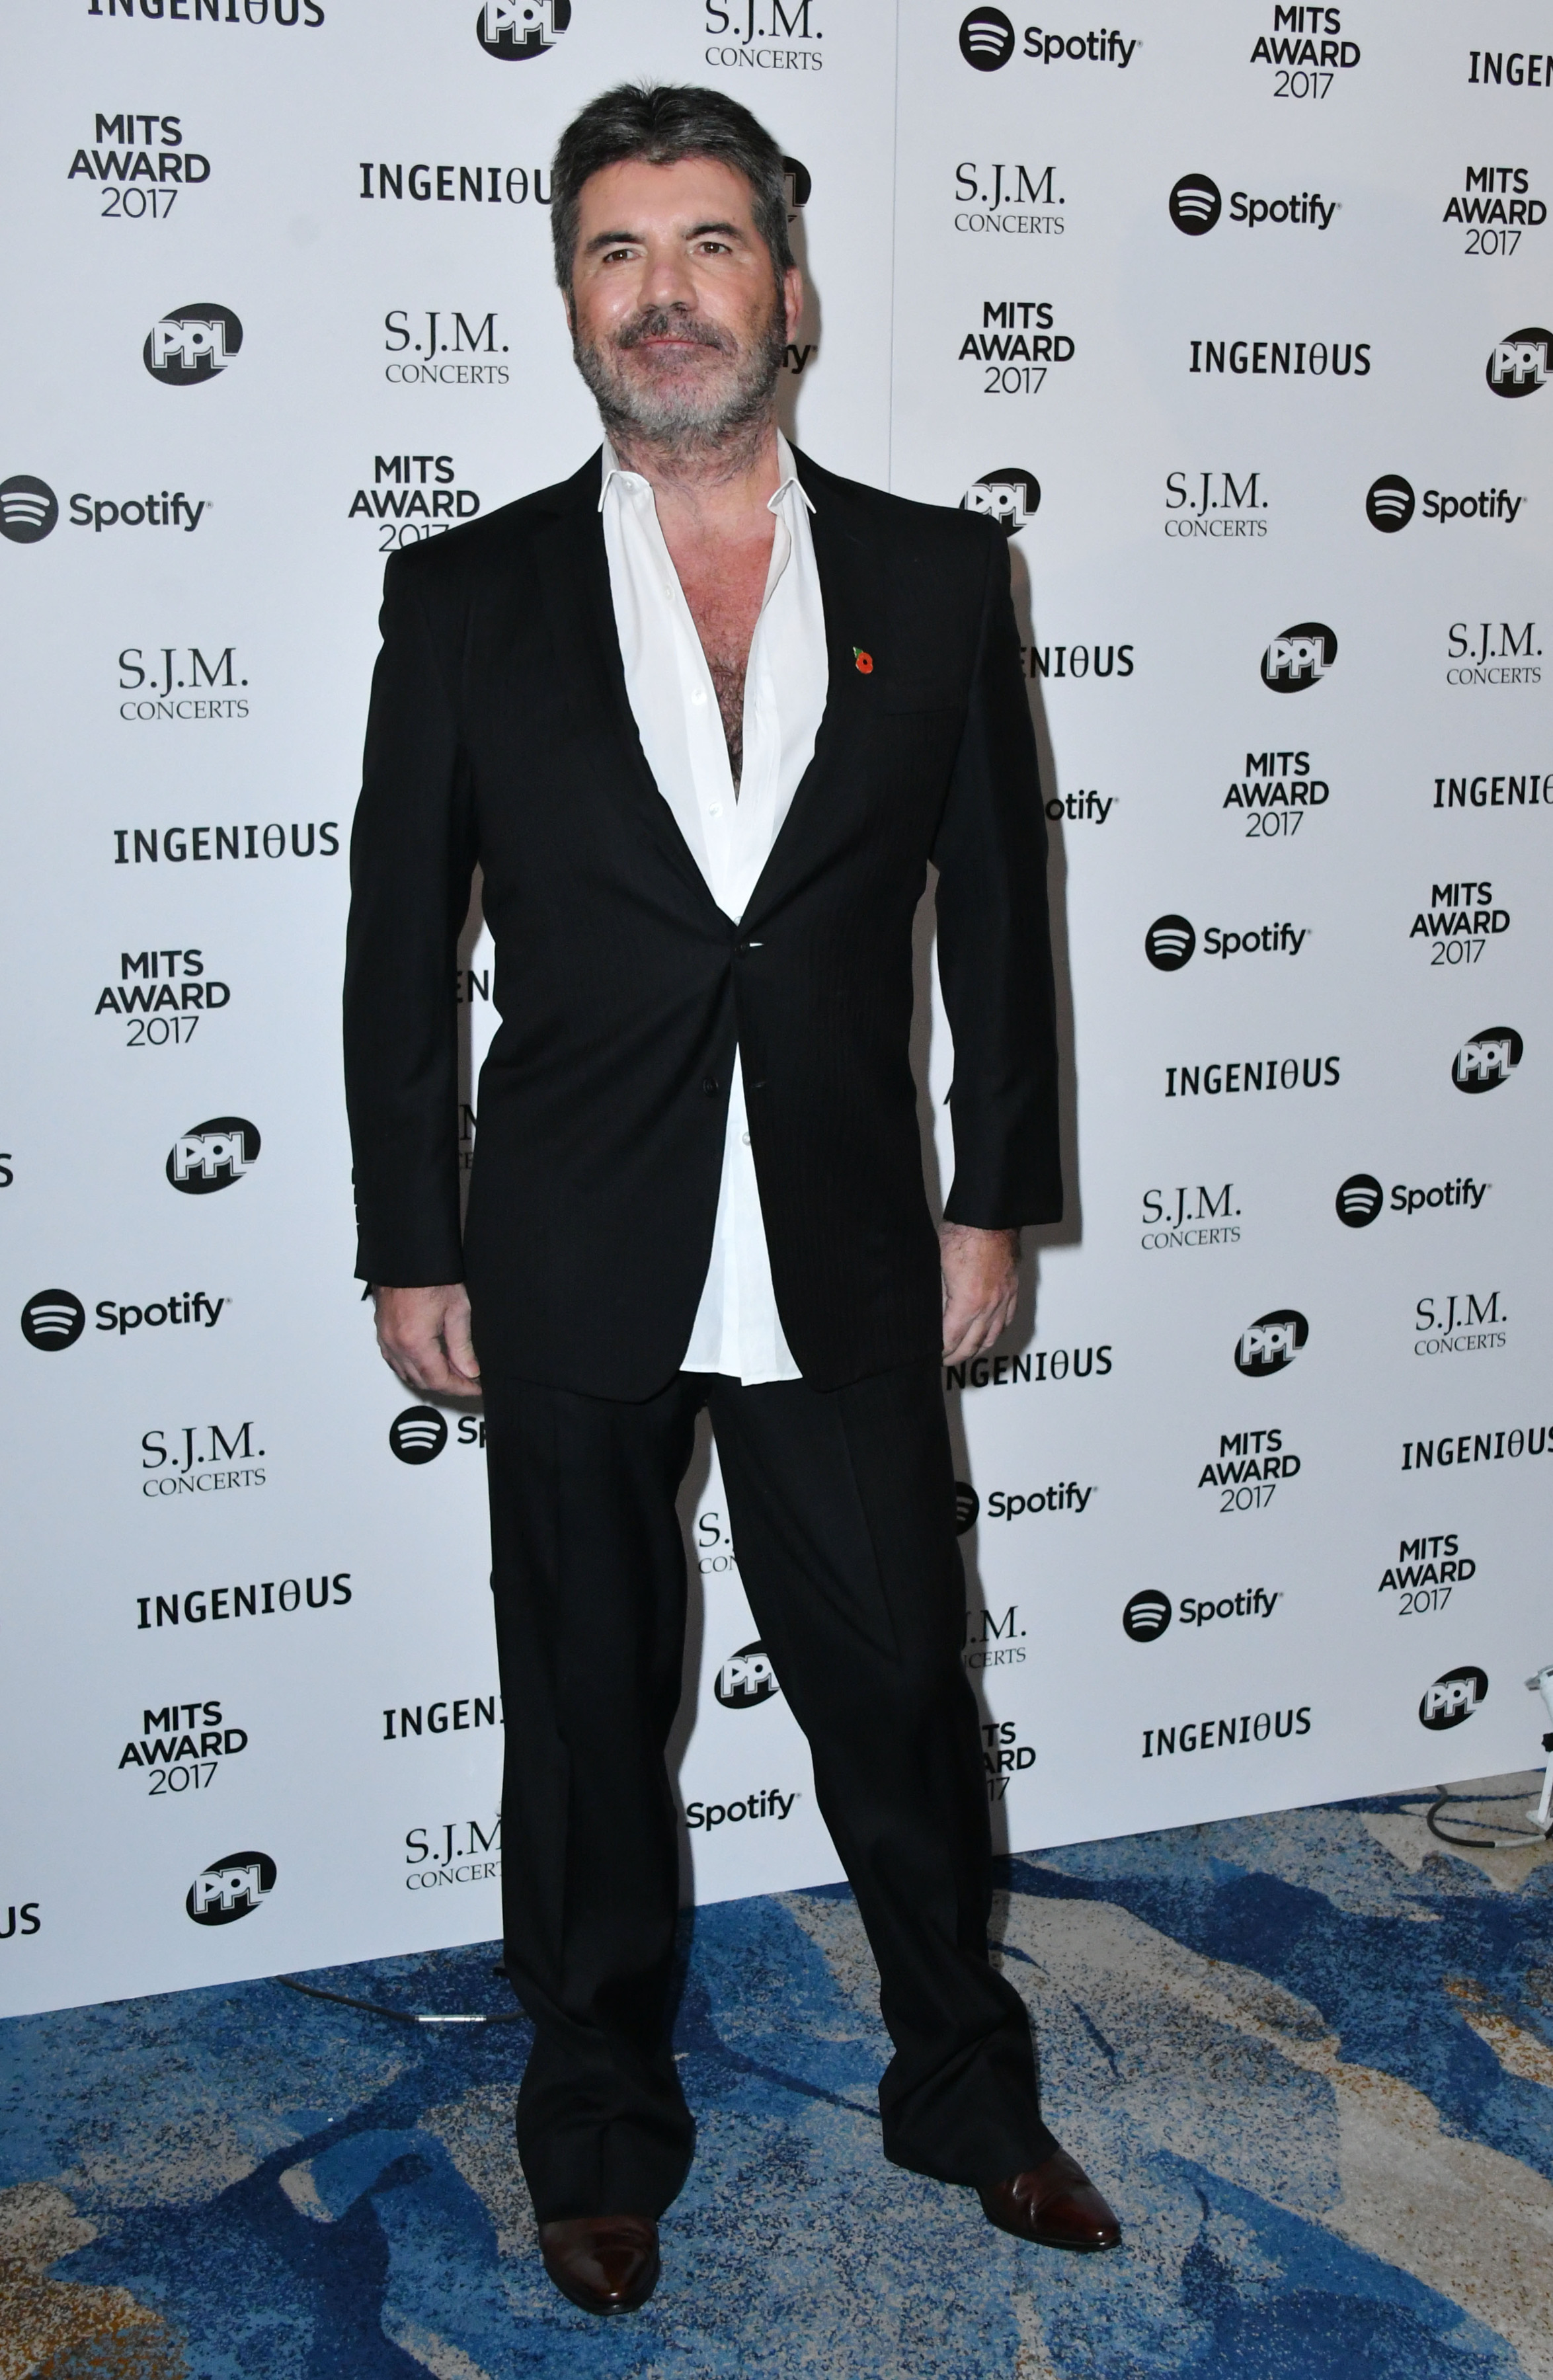 Simon Cowell attends the 26th Annual Music Industry Trusts Award in London on Nov. 6, 2017.